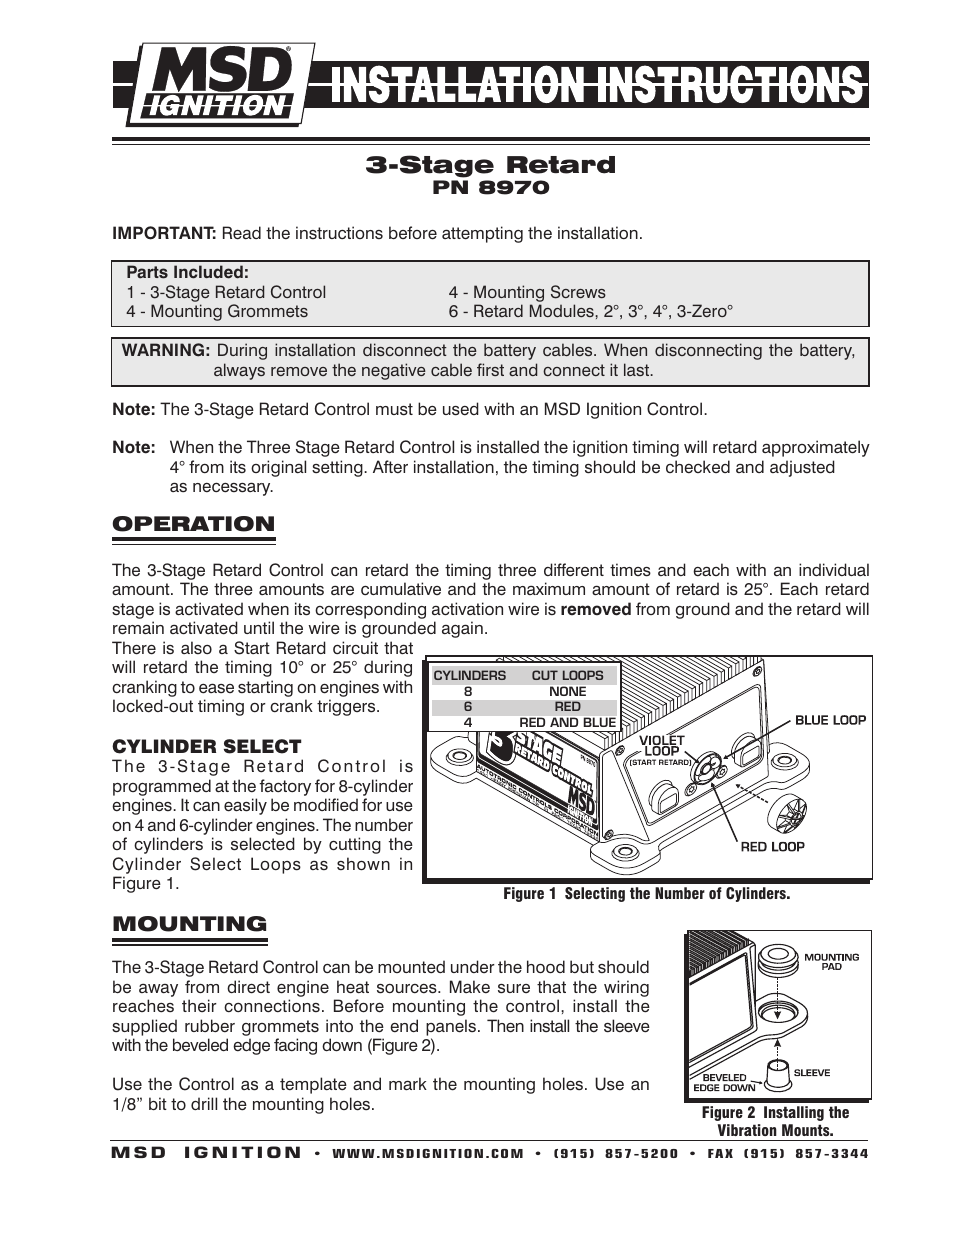 msd 8970 three stage retard control installation user manual 8 pages HEI Distributor Diagram